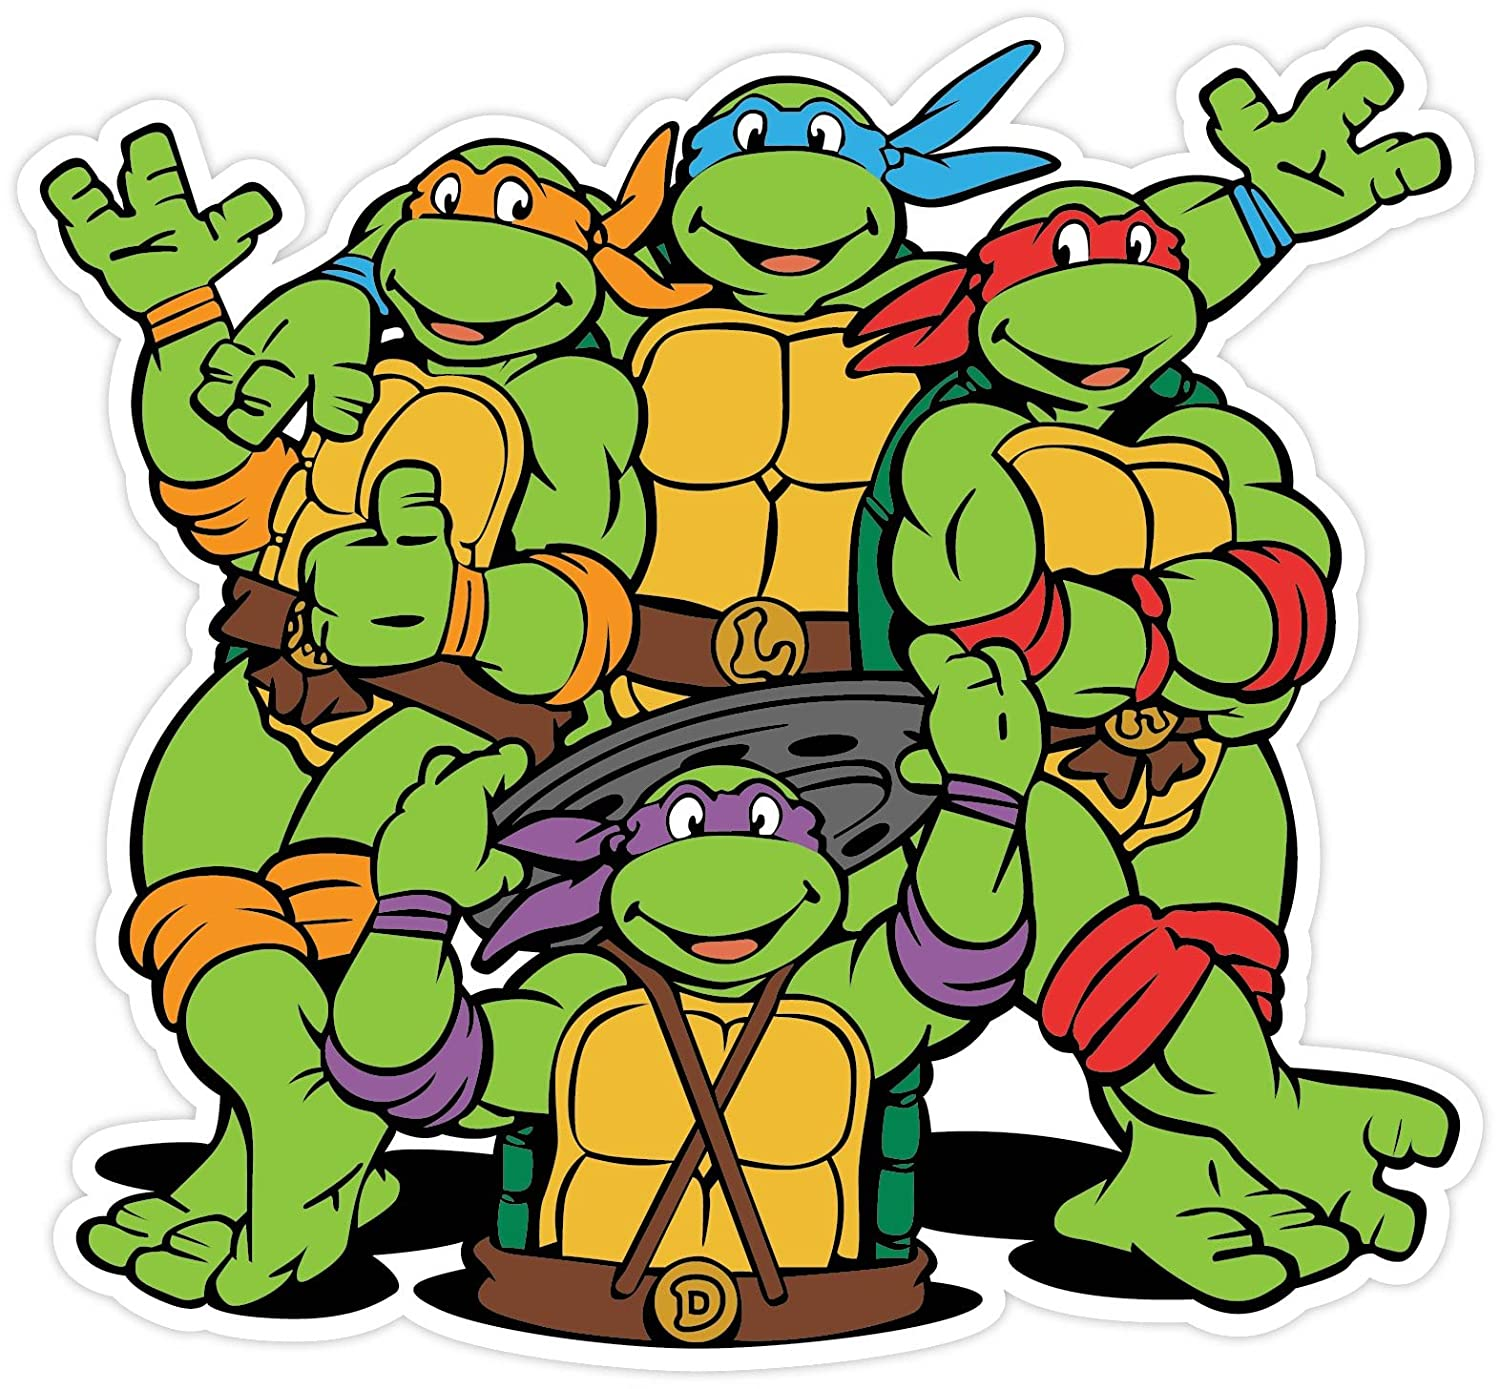 Amazon.com: Teenage Mutant Ninja Turtles Cartoon Vinilo ...